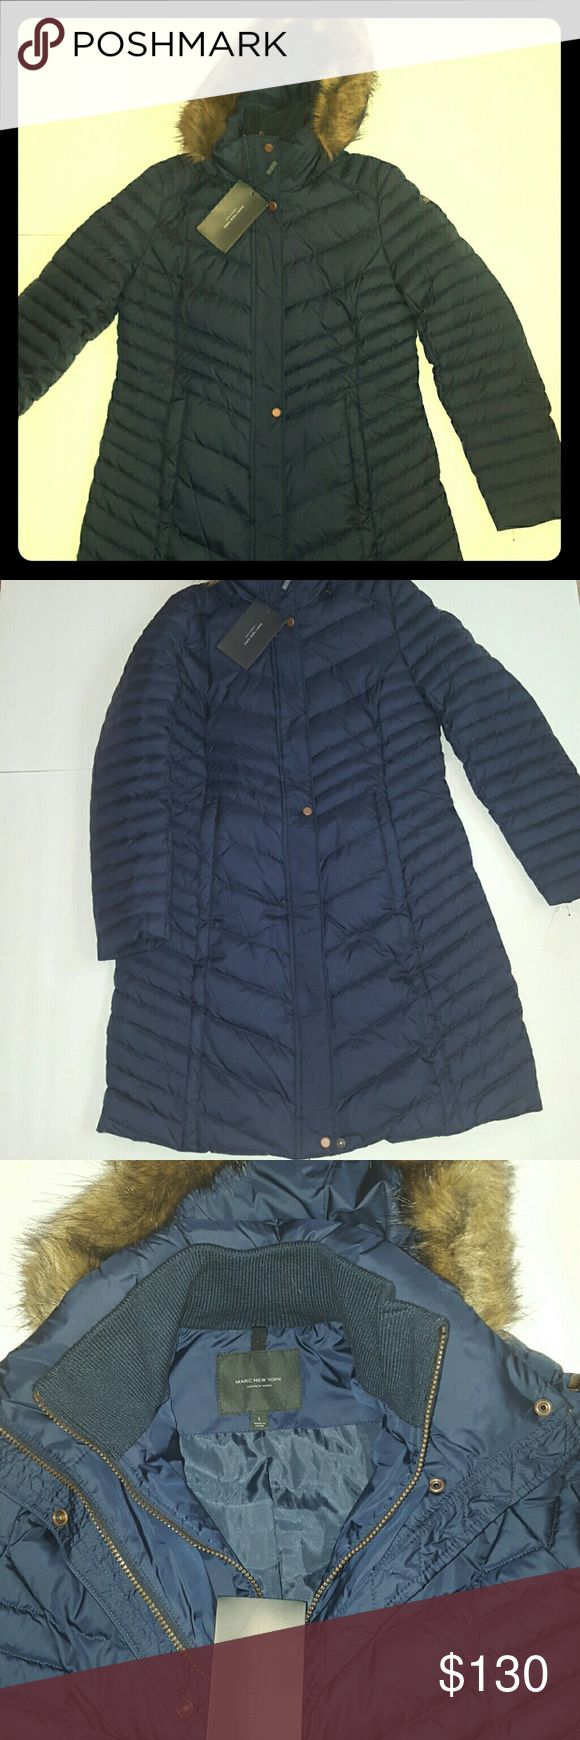 Andrew Marc parka NWT past the knees parka Large. Navy blue Feather down. Double zip. Andrew Marc Jackets & Coats